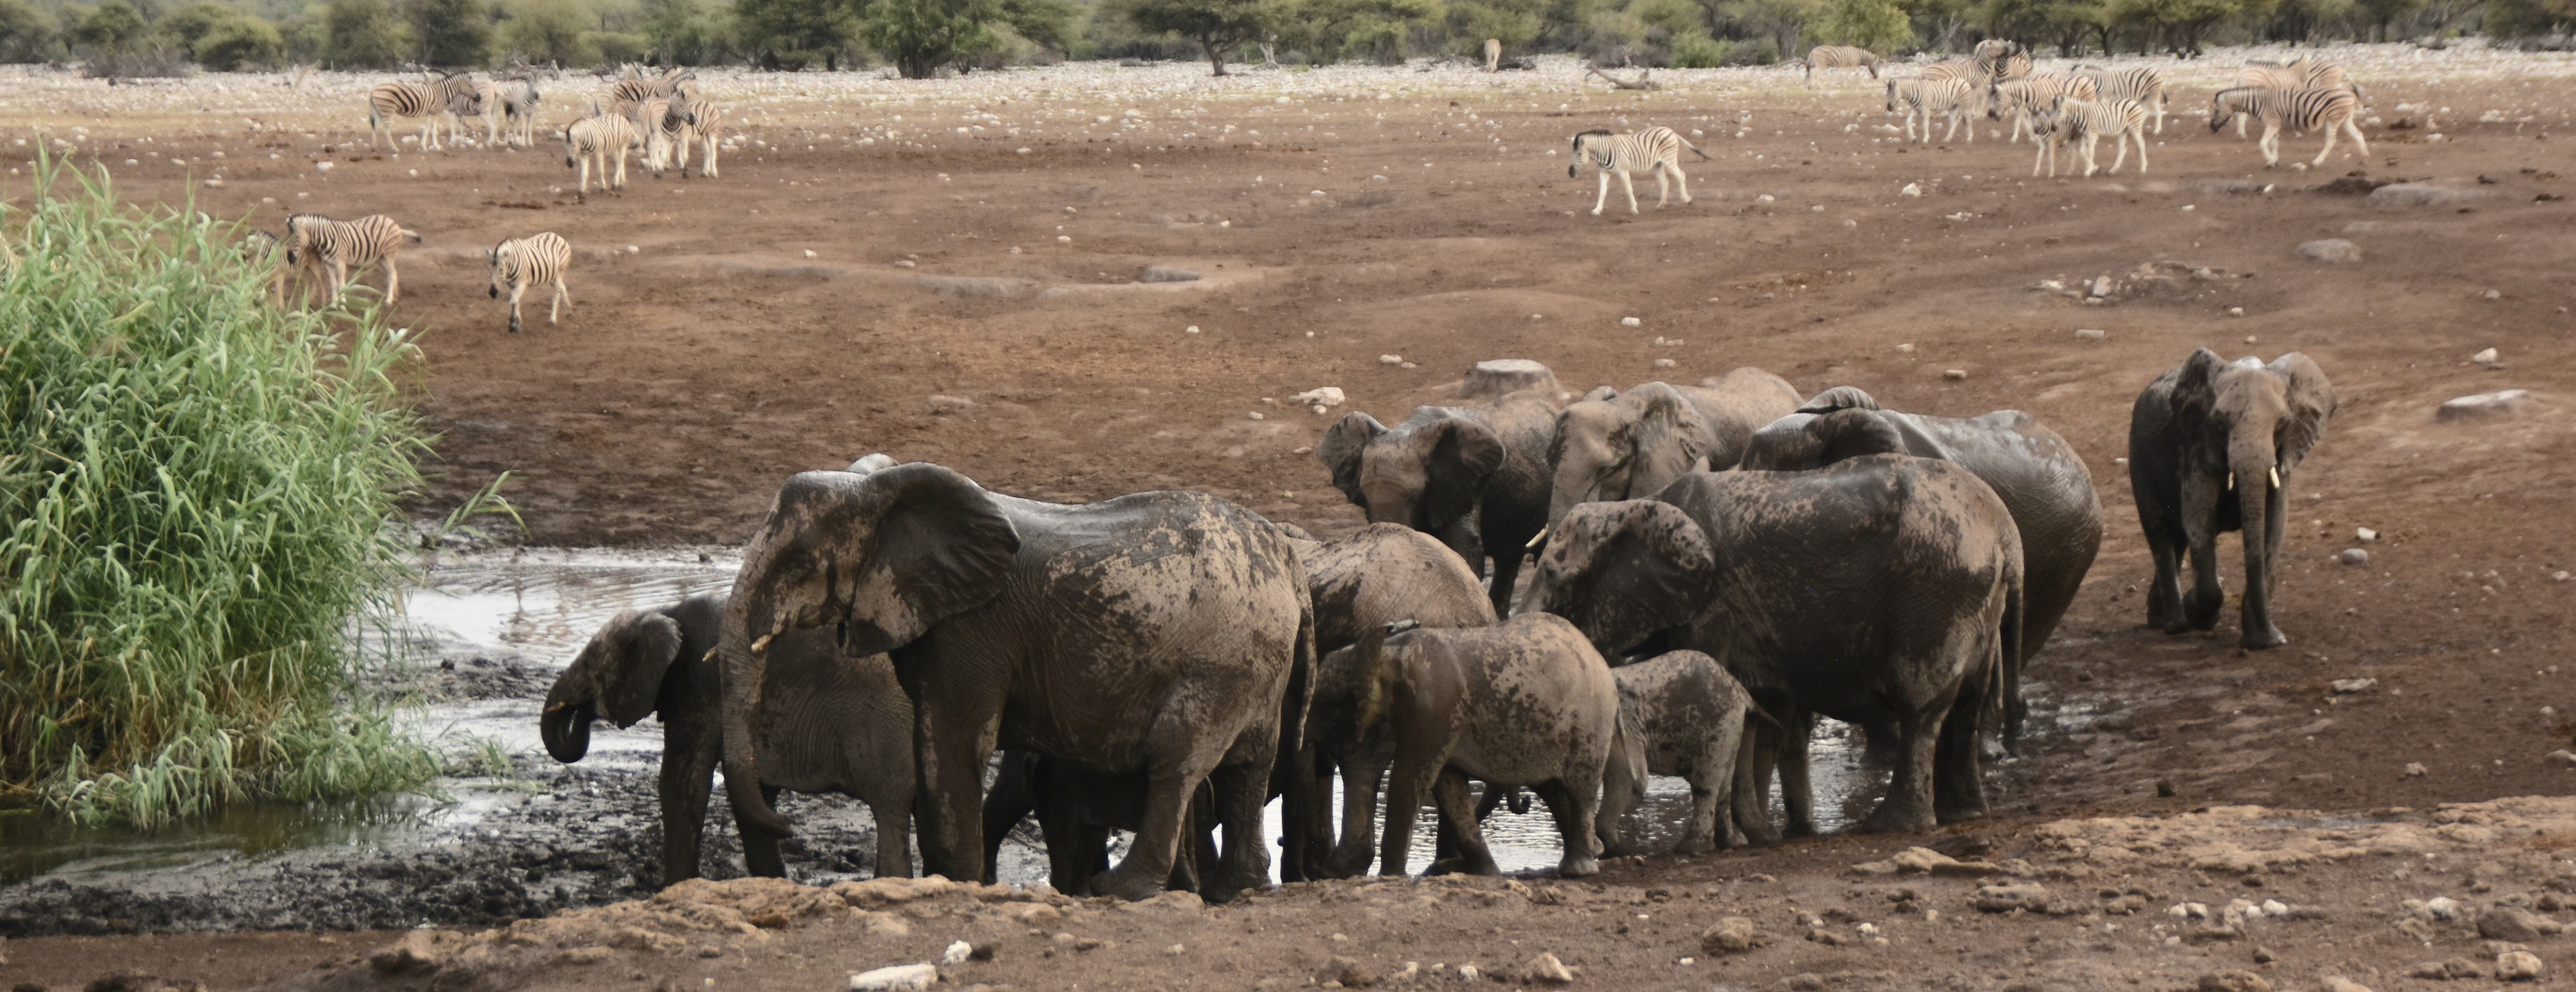 Elephants at Etosha Water Holes